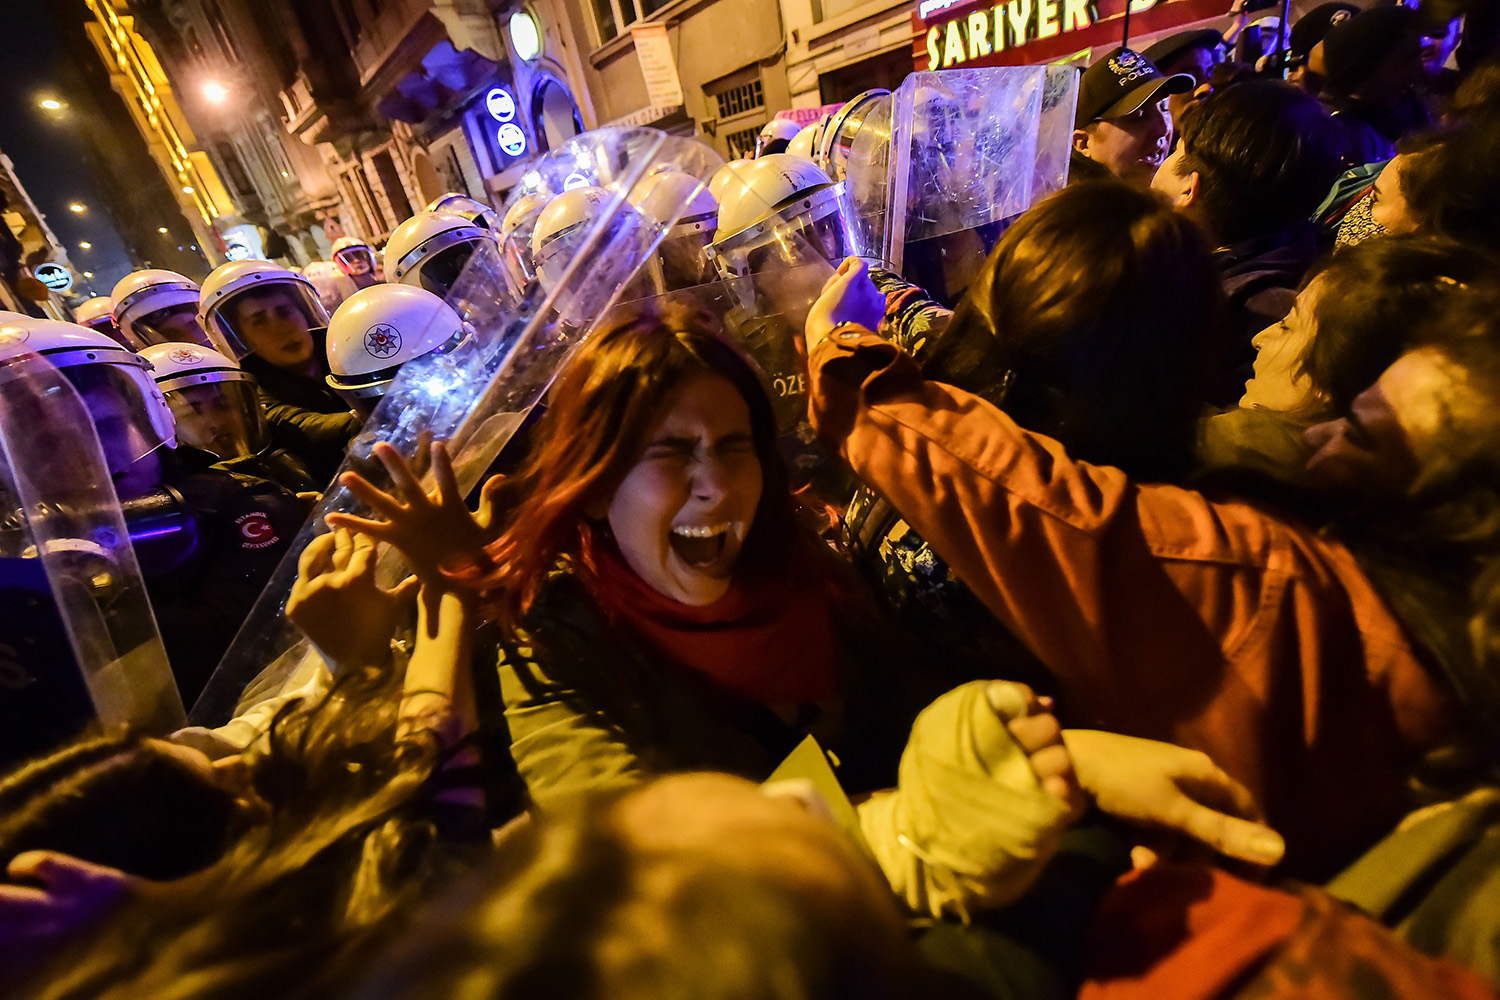 Turkish anti-riot police officers push back women during a rally marking International Women's Day in Istanbul on March 8. Istanbul police fired tear gas at thousands of women who took to the city's central avenue in defiance of a protest ban to demand greater rights and denounce violence. YASIN AKGUL/AFP via Getty Images